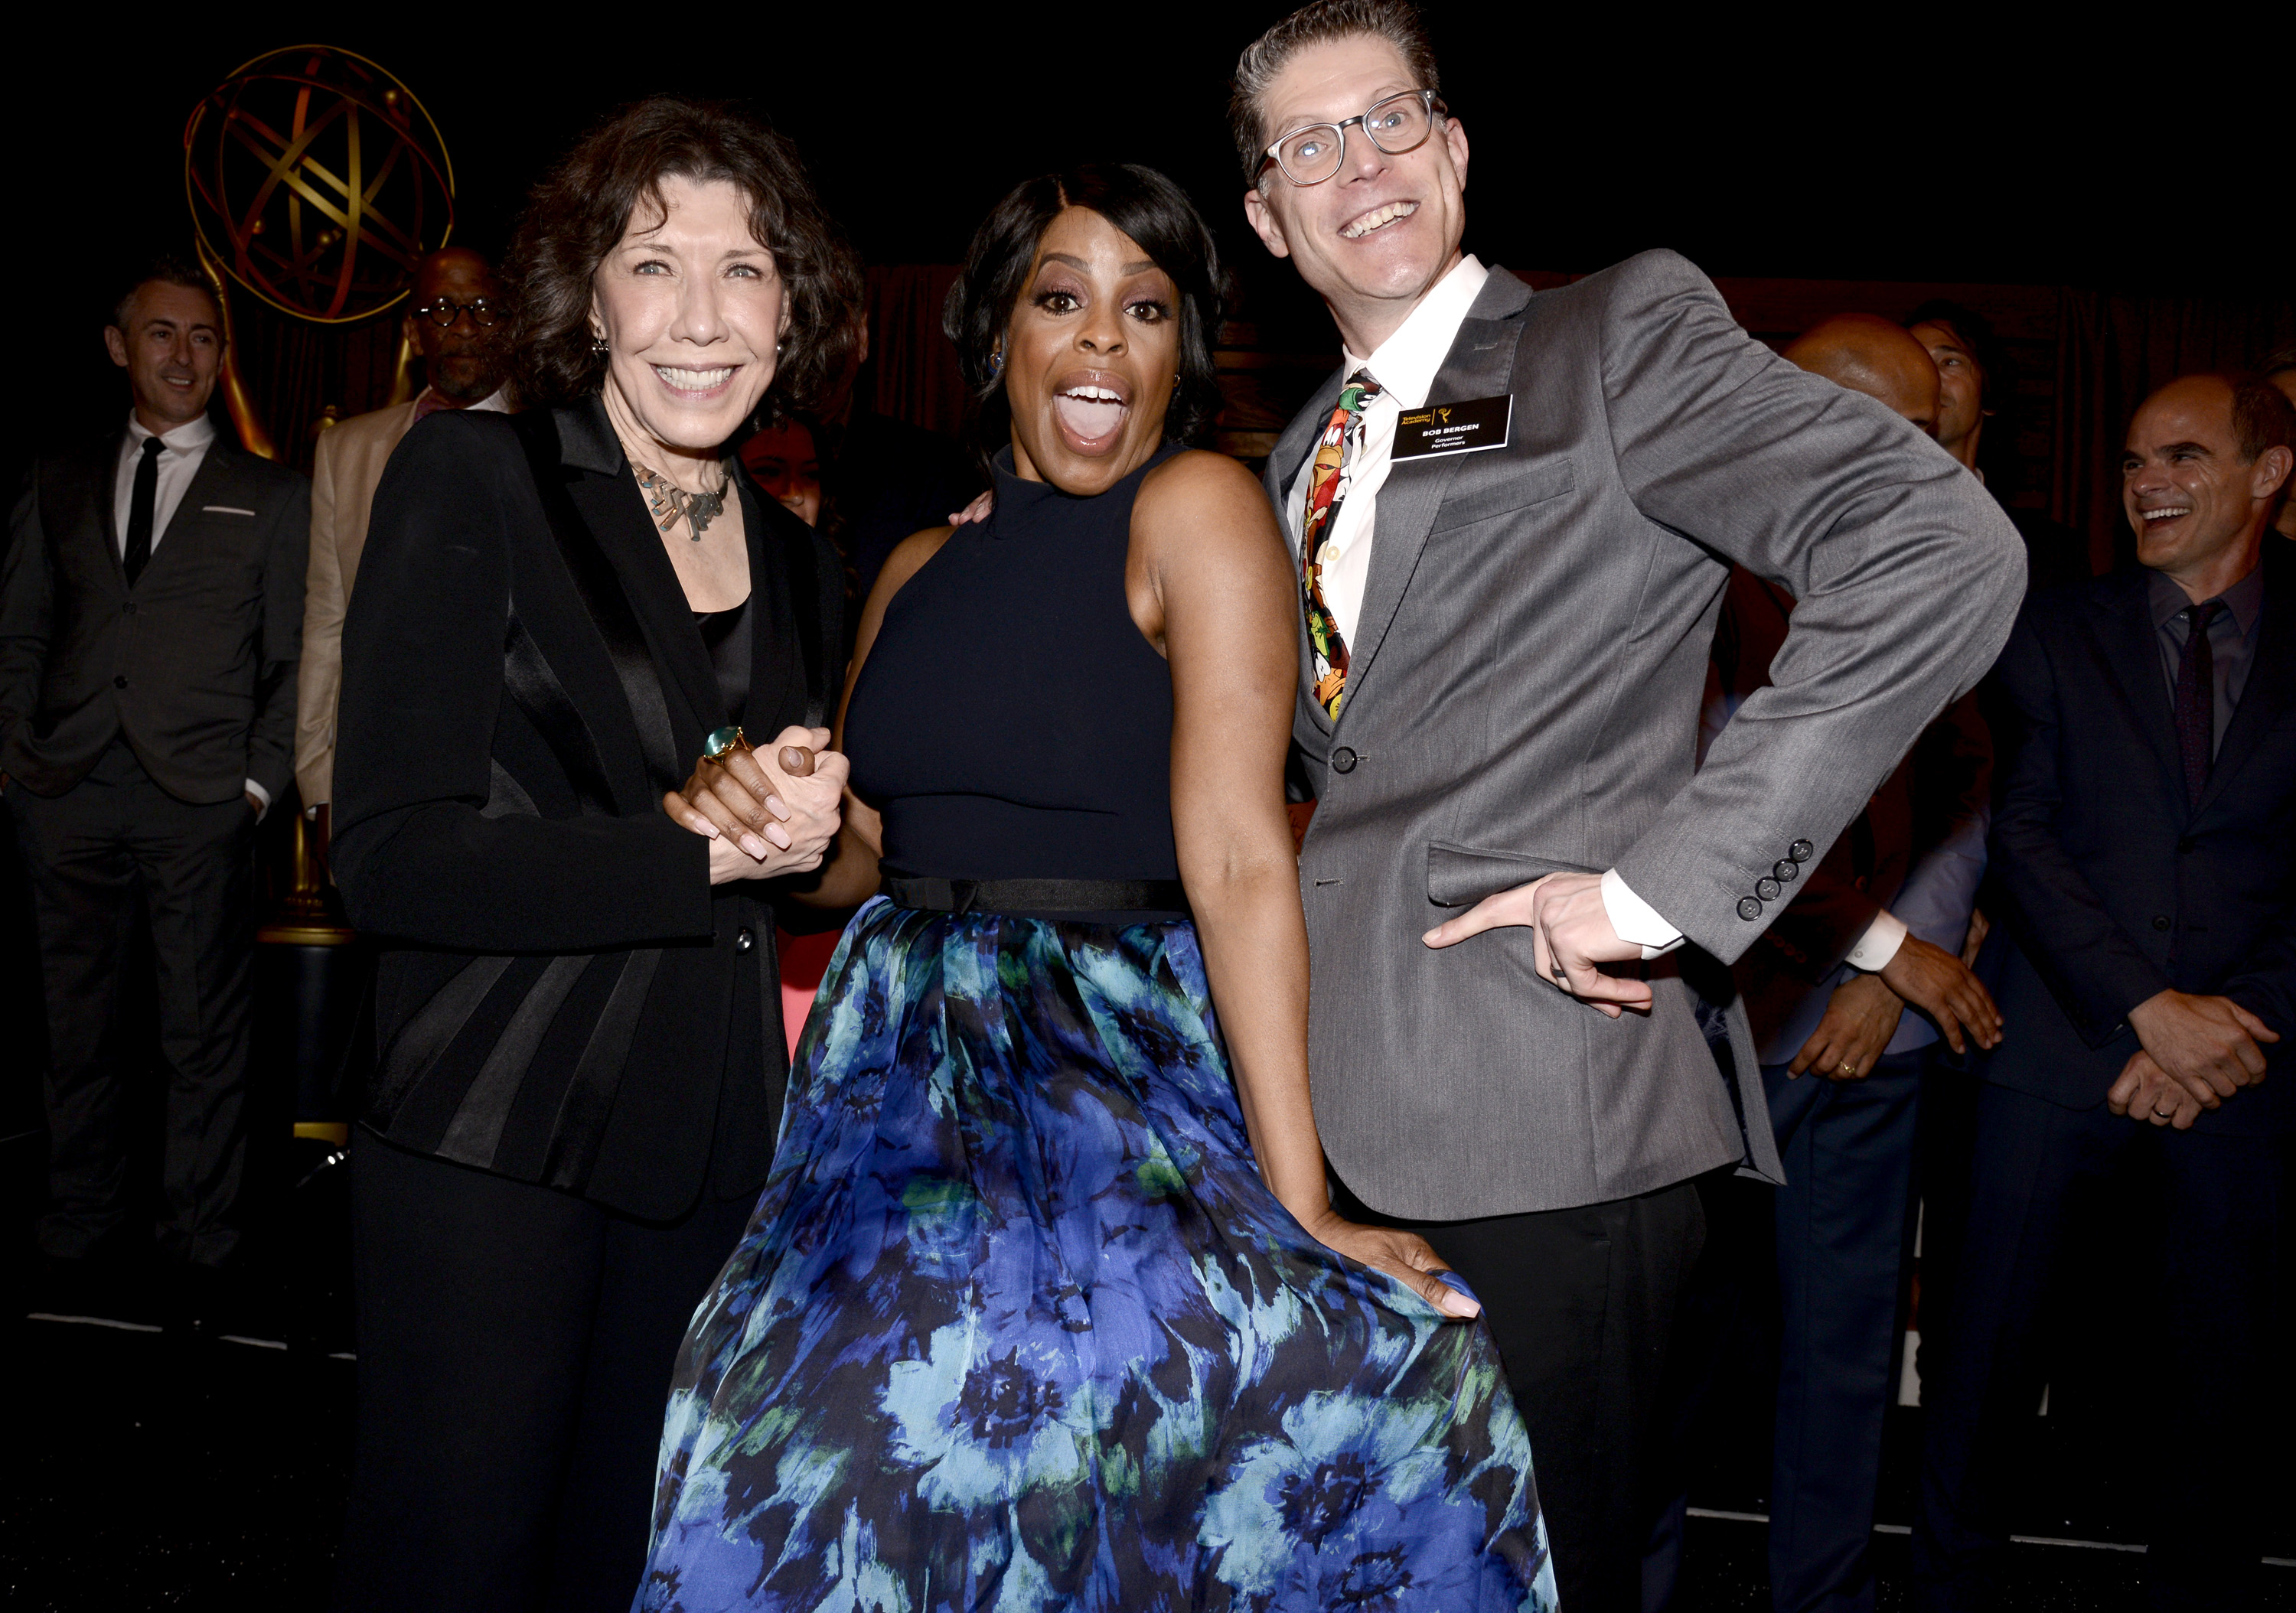 EXCLUSIVE - Lily Tomlin, from left, Niecy Nash, and Academy Governor Bob Bergen, attend the Television Academy's 67th Emmy Awards Performers Nominee Reception at the Pacific Design Center on Saturday, Sept.19, 2015, in West Hollywood, Calif. (Photo by Dan Steinberg/Invision for the Television Academy/AP Images)